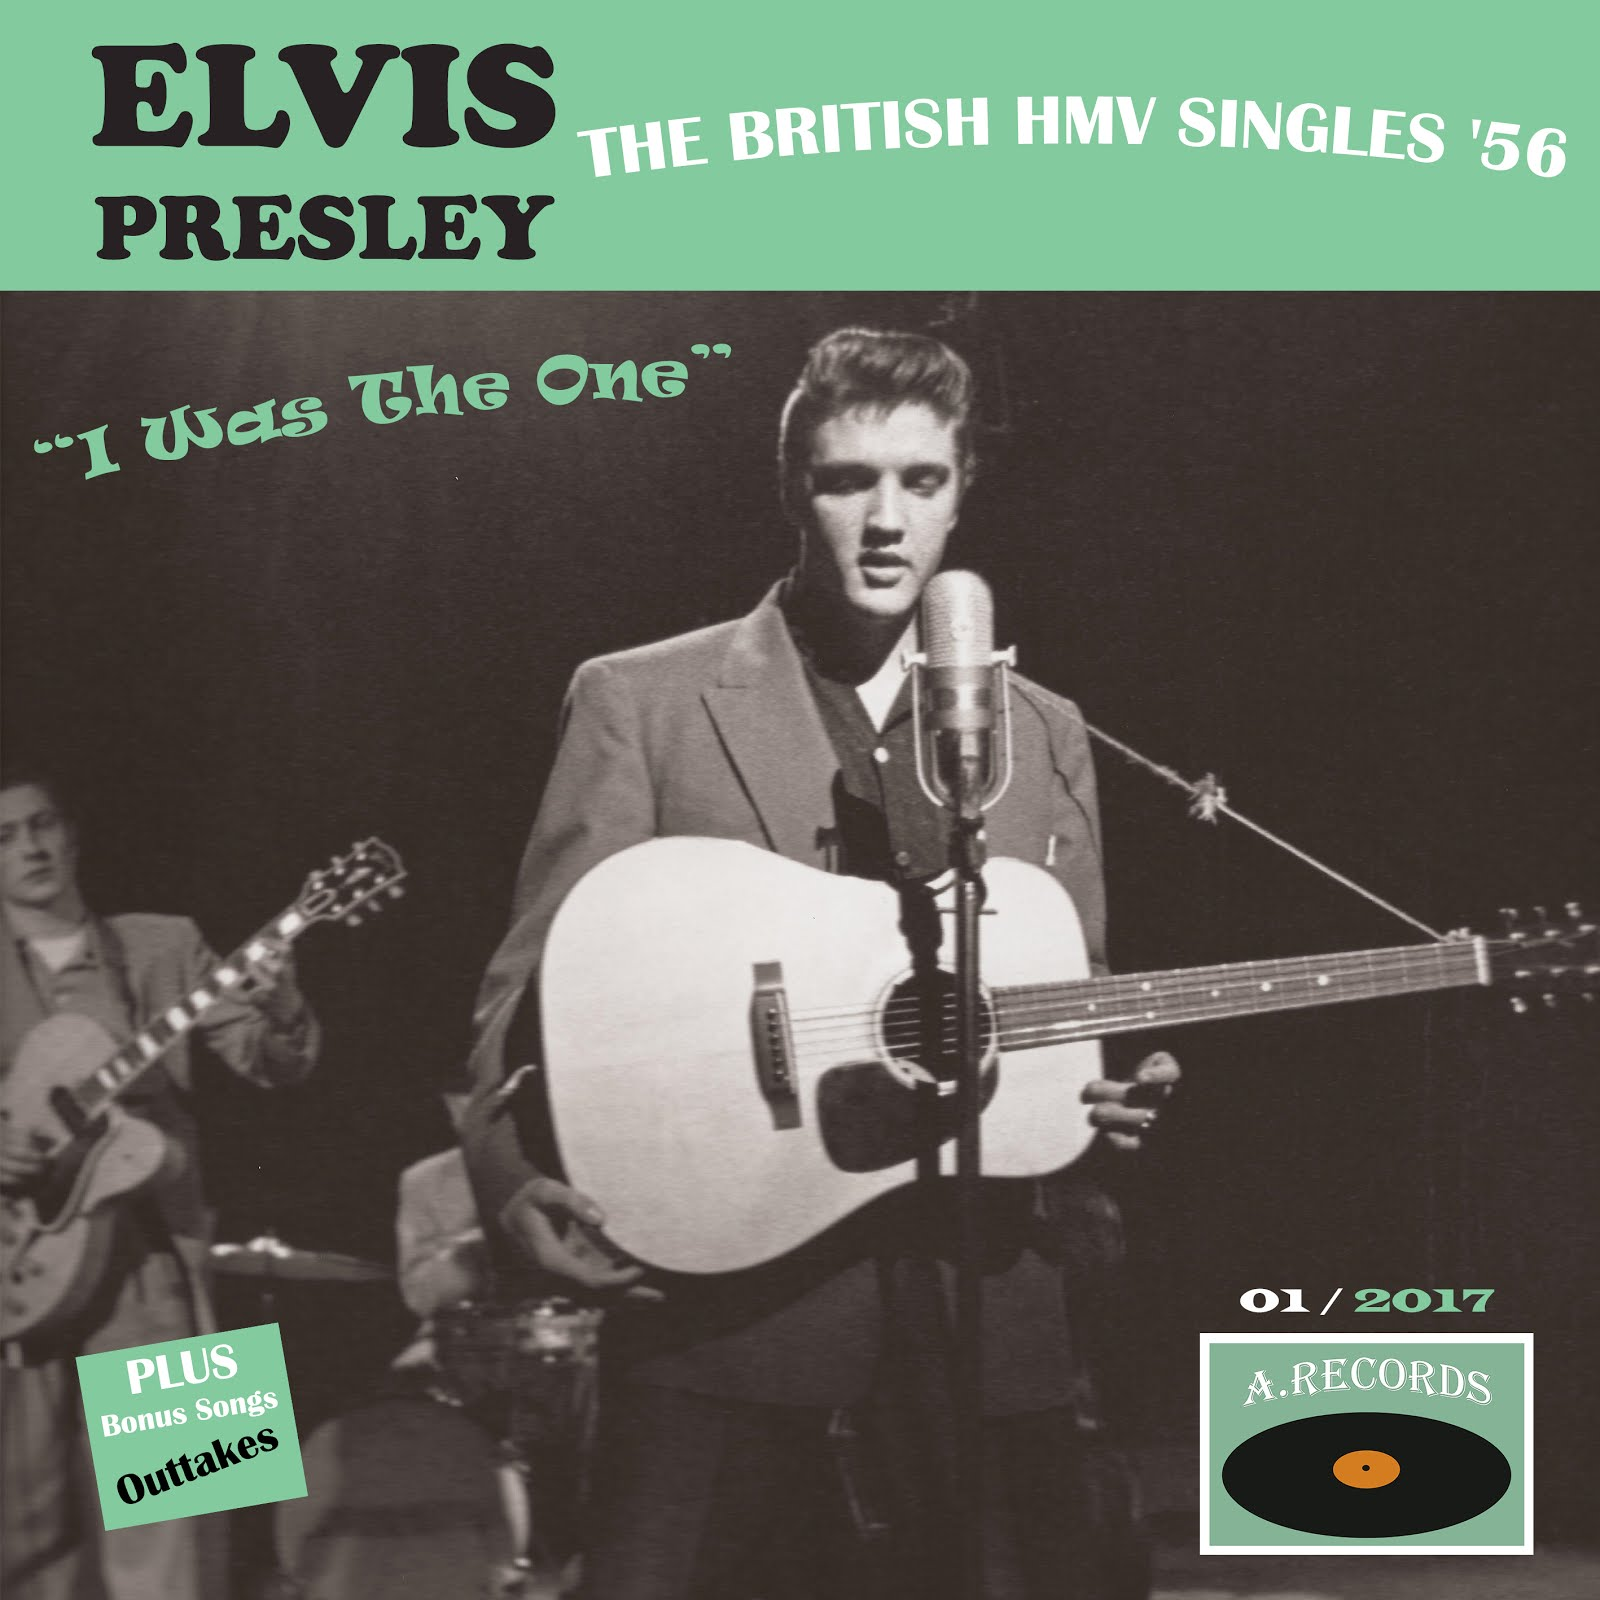 The British HMV Singles '56 - I Was The One (January 2017)